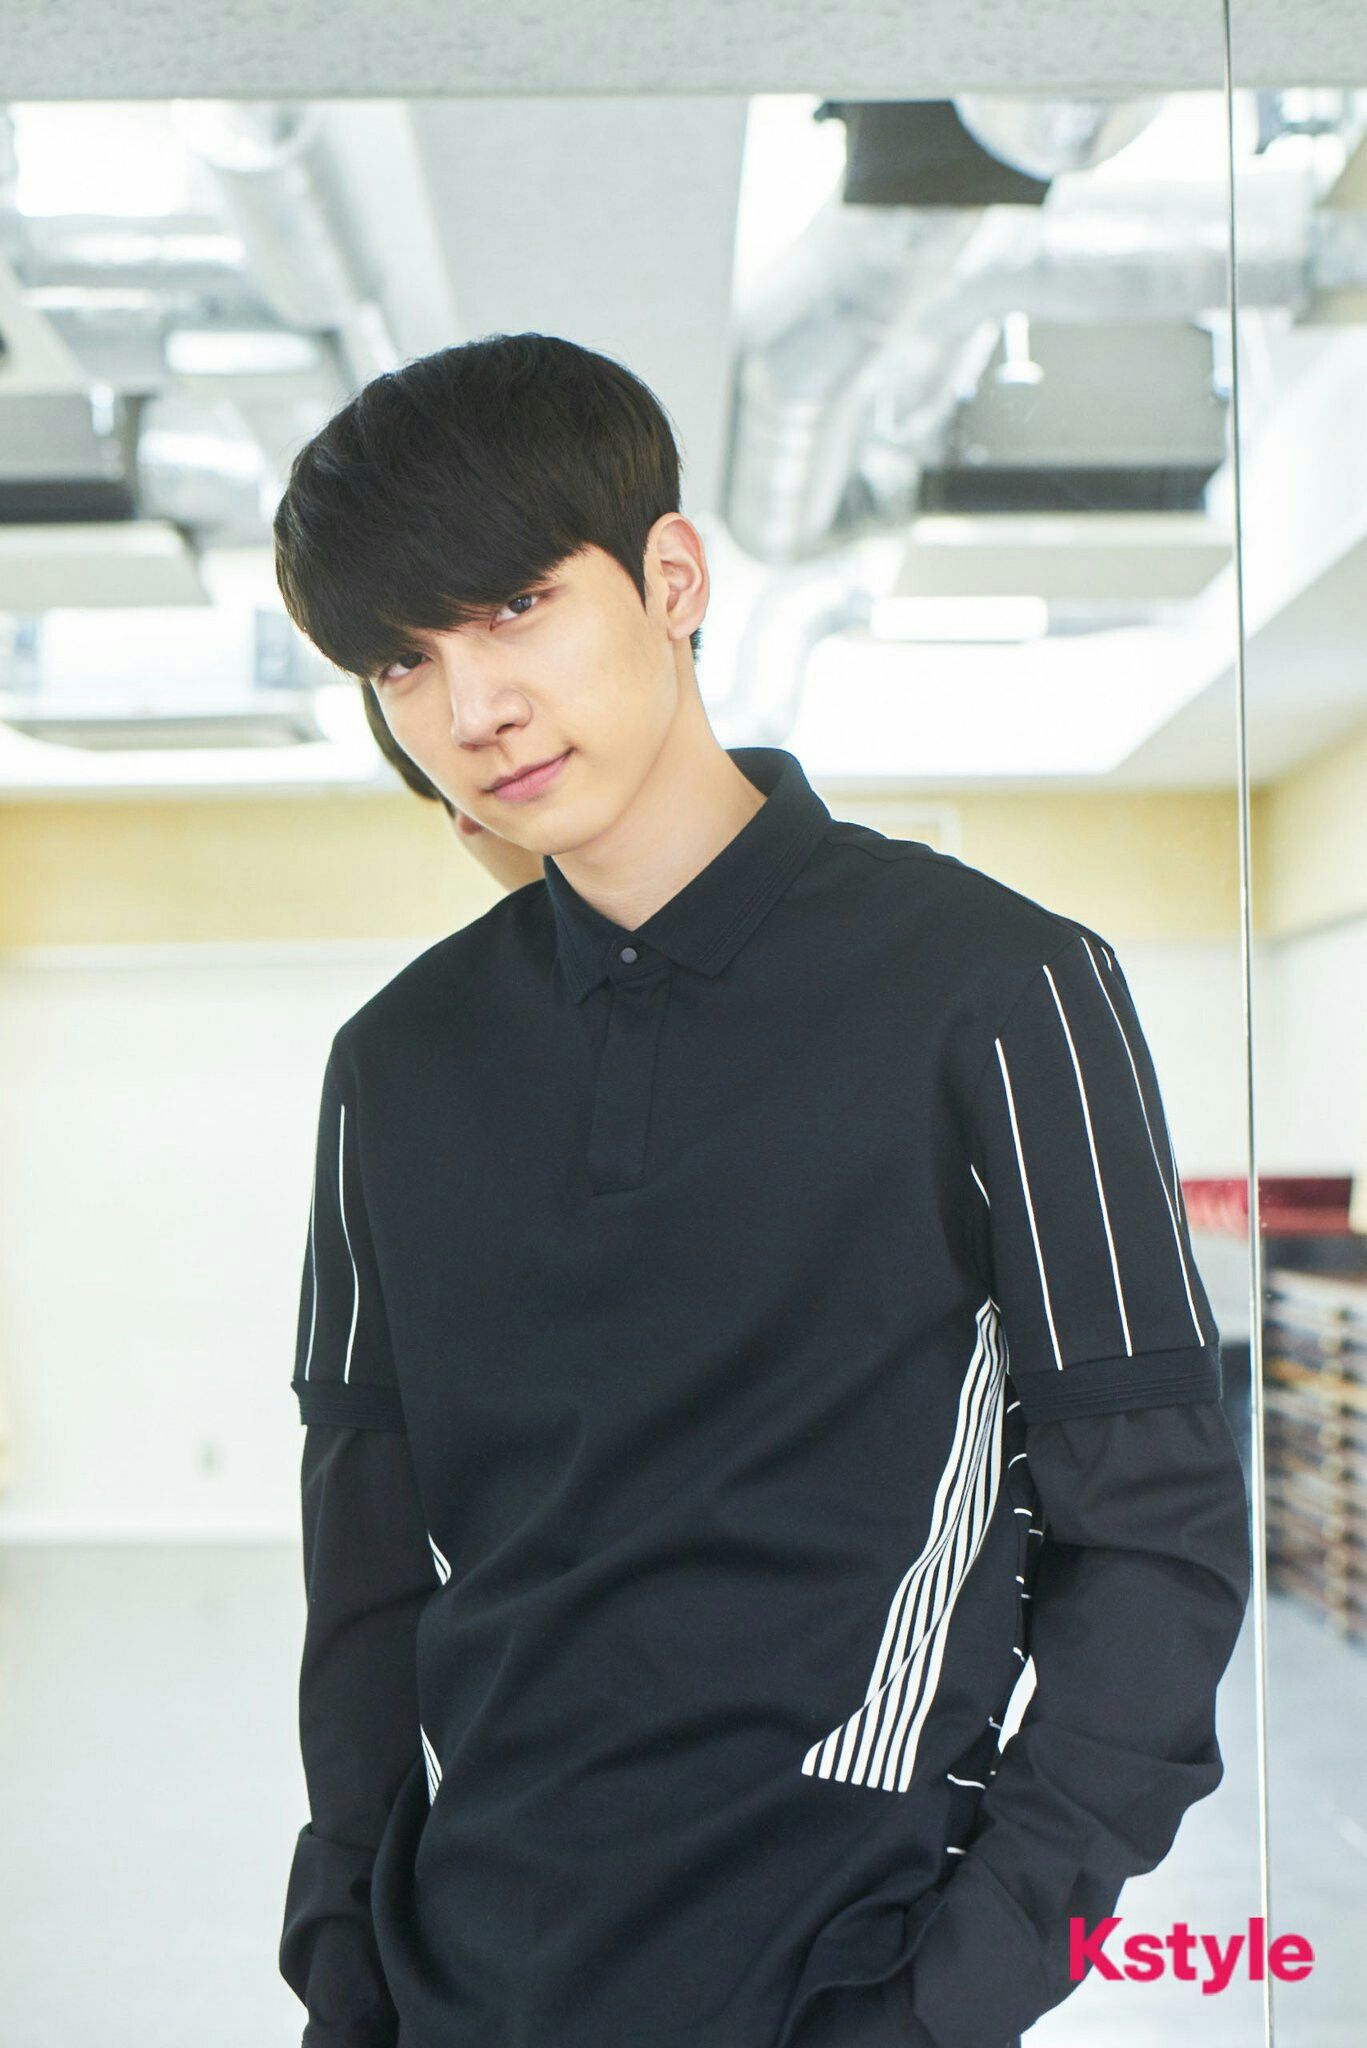 170414 @Kstyle_news Twitter update with Hyuk (3/3) 💙 Cr. @ withVIXX